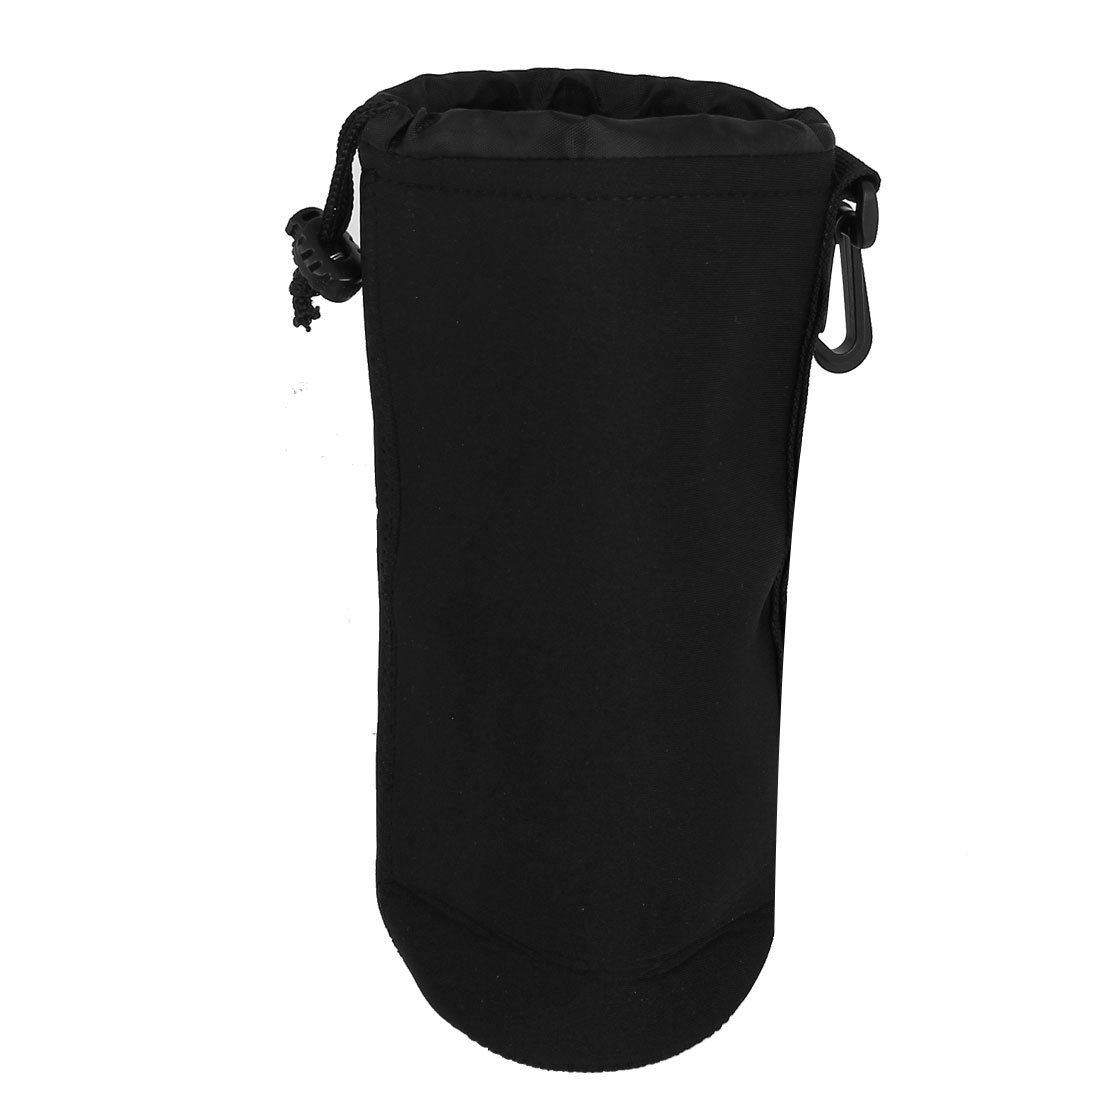 Size XL Neoprene Lens Carrying Pouch Bag Holder Black for Digital Camera